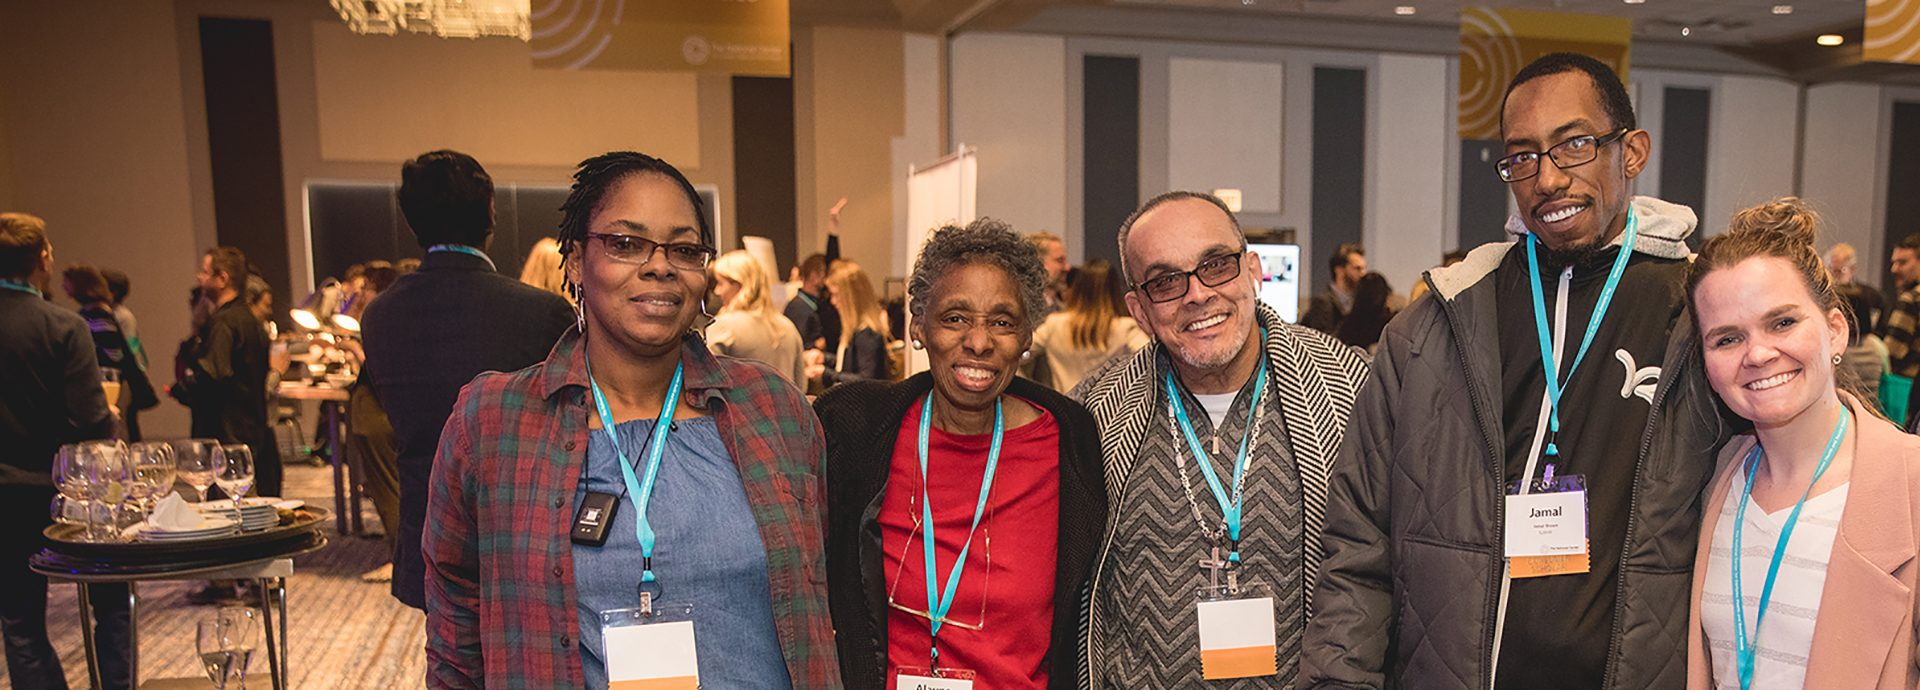 A group of National Consumer Scholars smile for the camera at one of our annual conferences